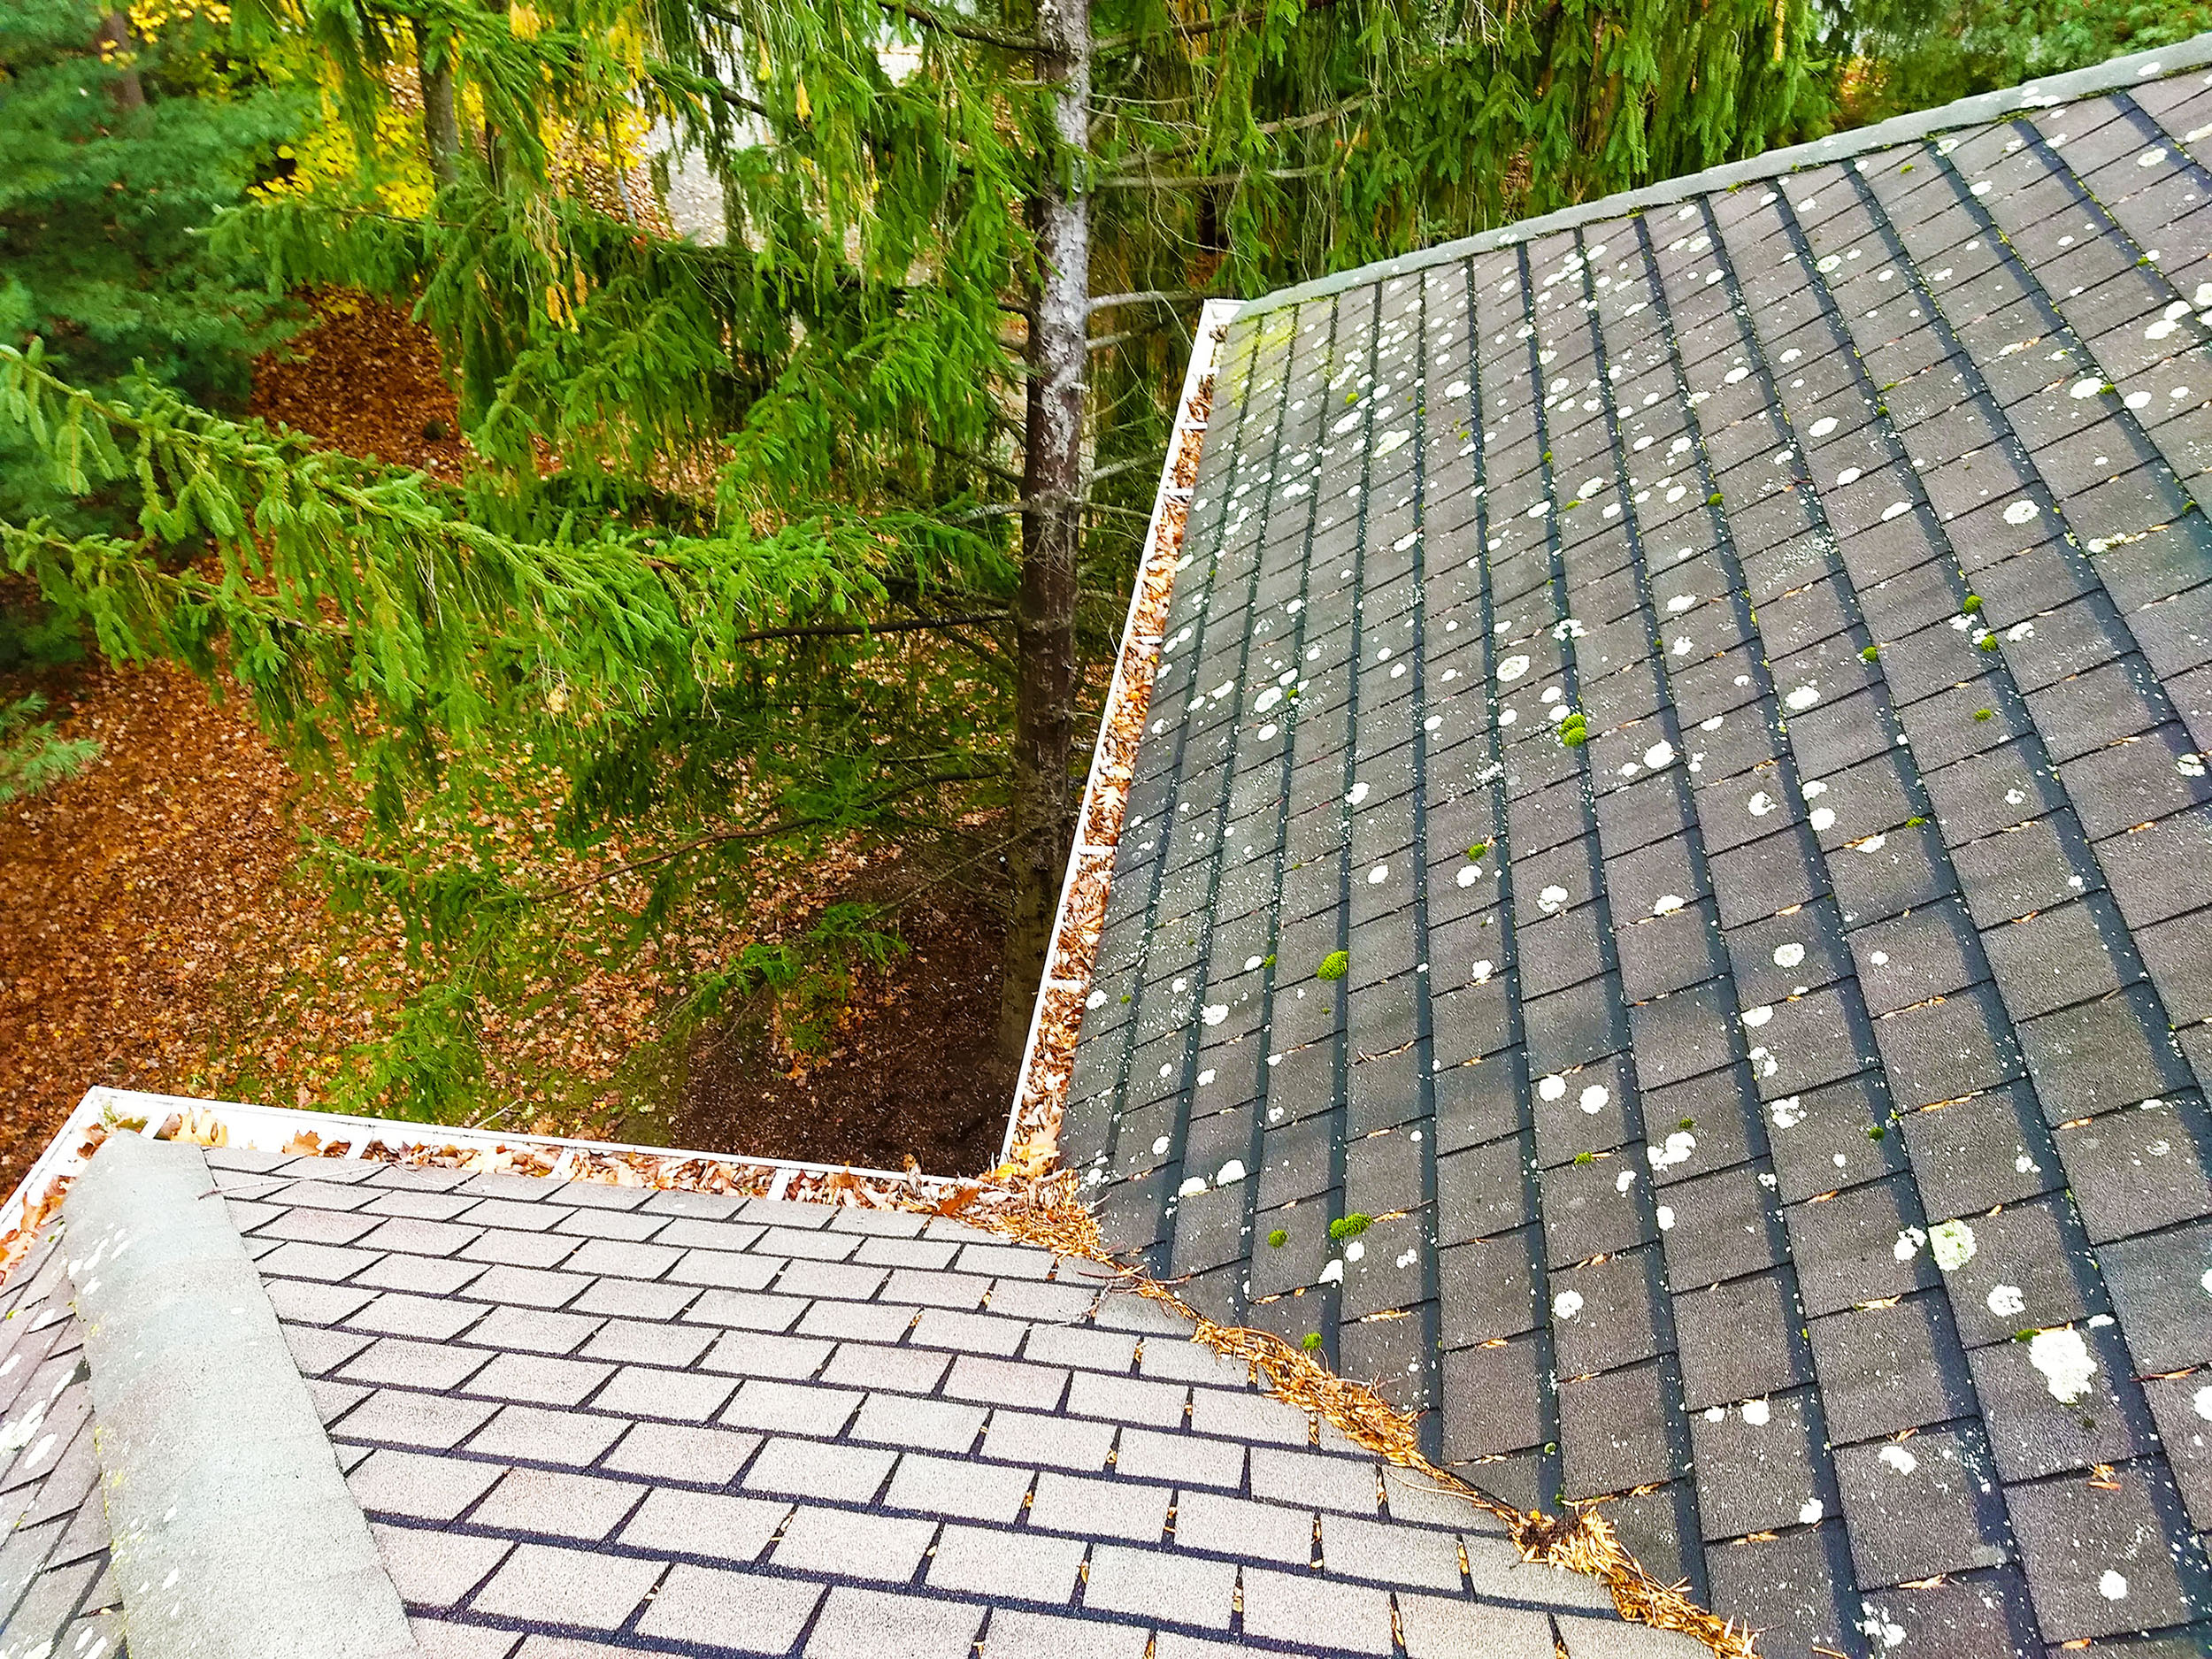 Gutter Cleaning Indianapolis In Recent Job 11 7 17